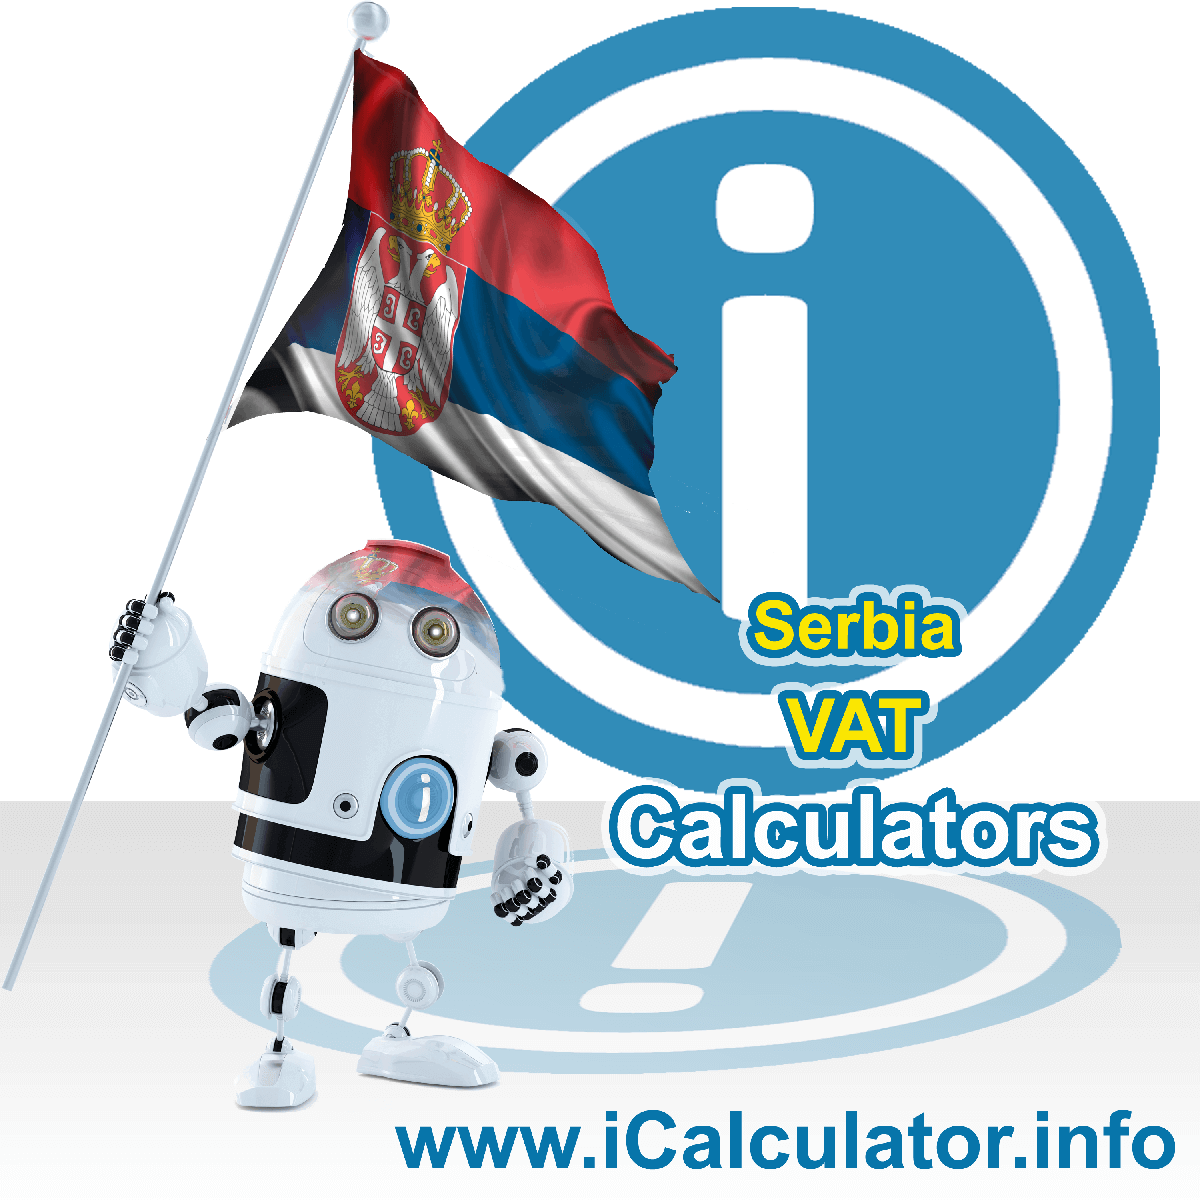 Serbia VAT Calculator. This image shows the Serbia flag and information relating to the VAT formula used for calculating Value Added Tax in Serbia using the Serbia VAT Calculator in 2020